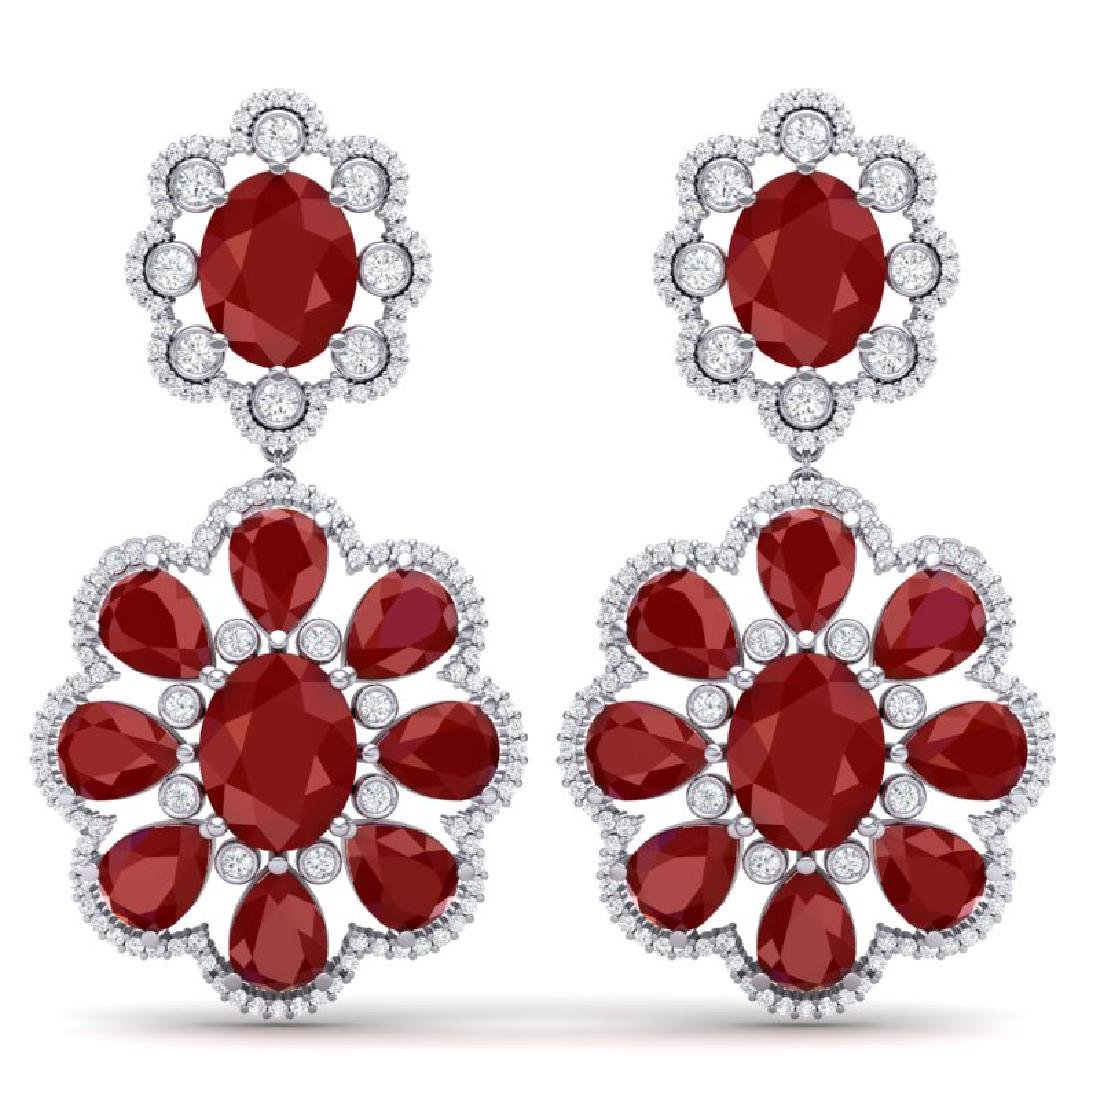 33.88 CTW Royalty Designer Ruby & VS Diamond Earrings